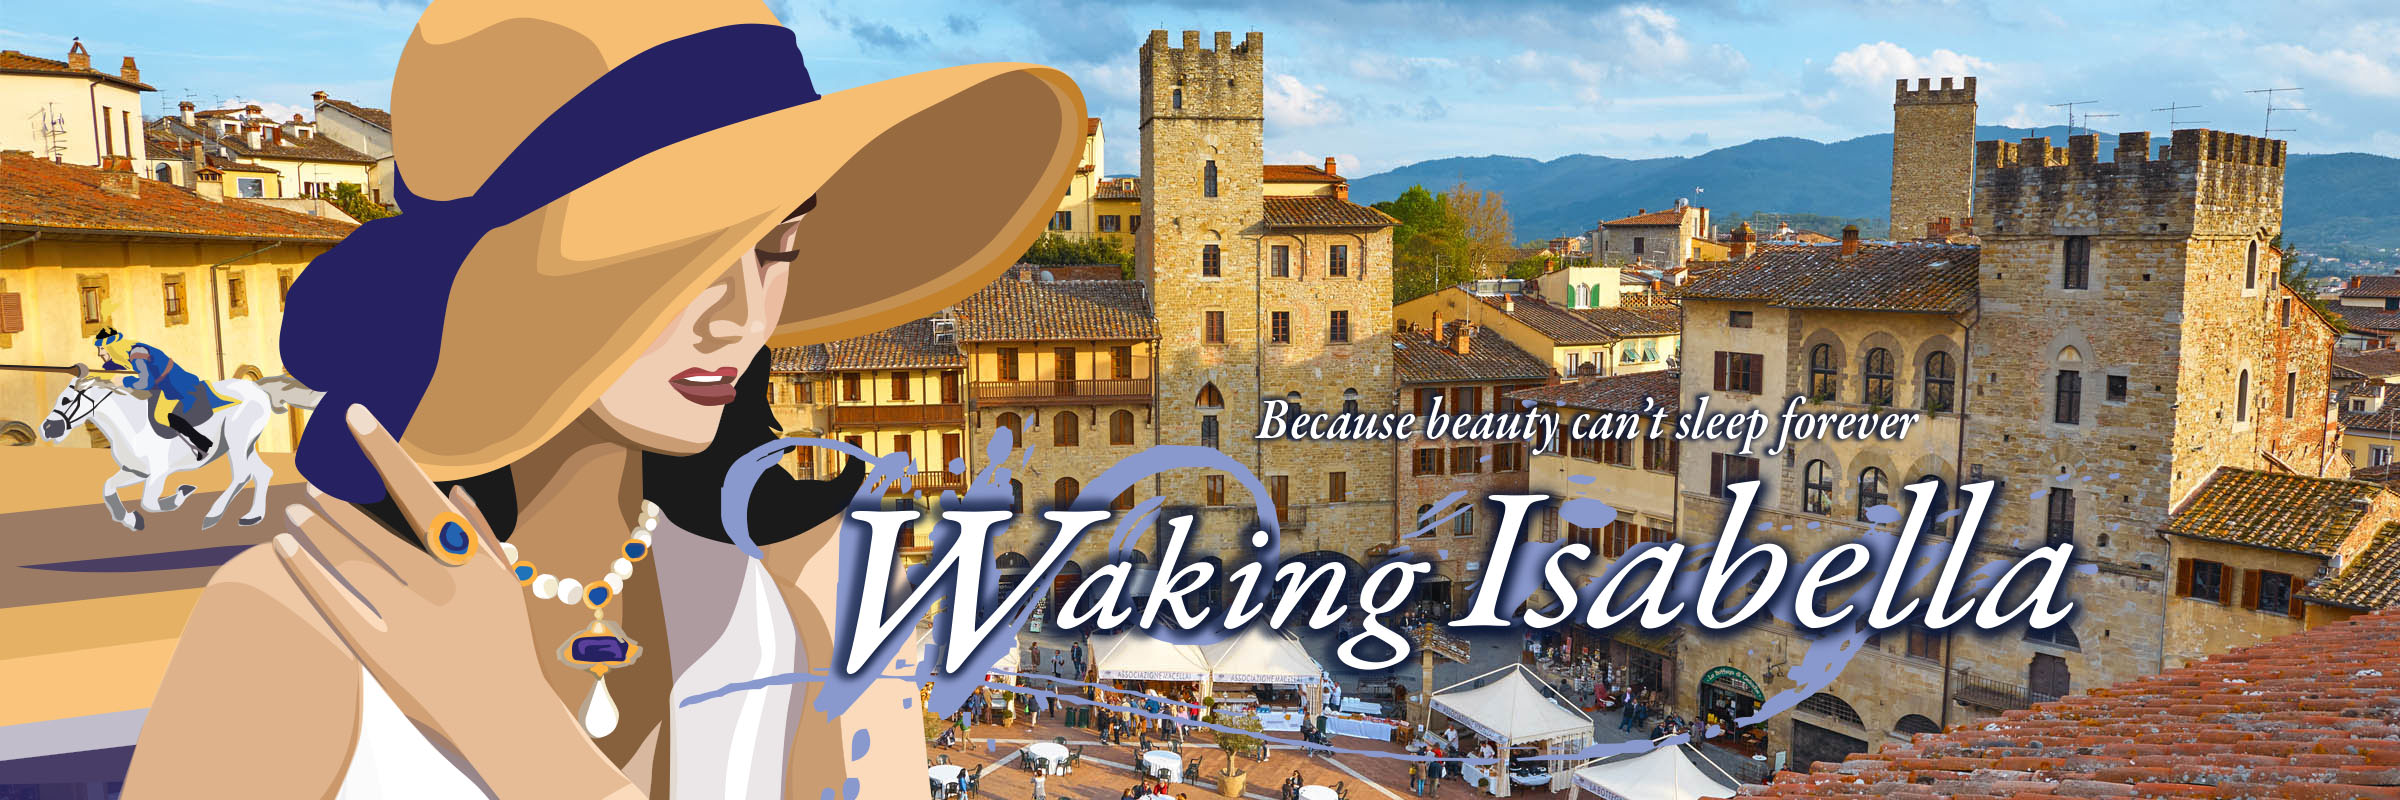 Author-website-Slides-Waking